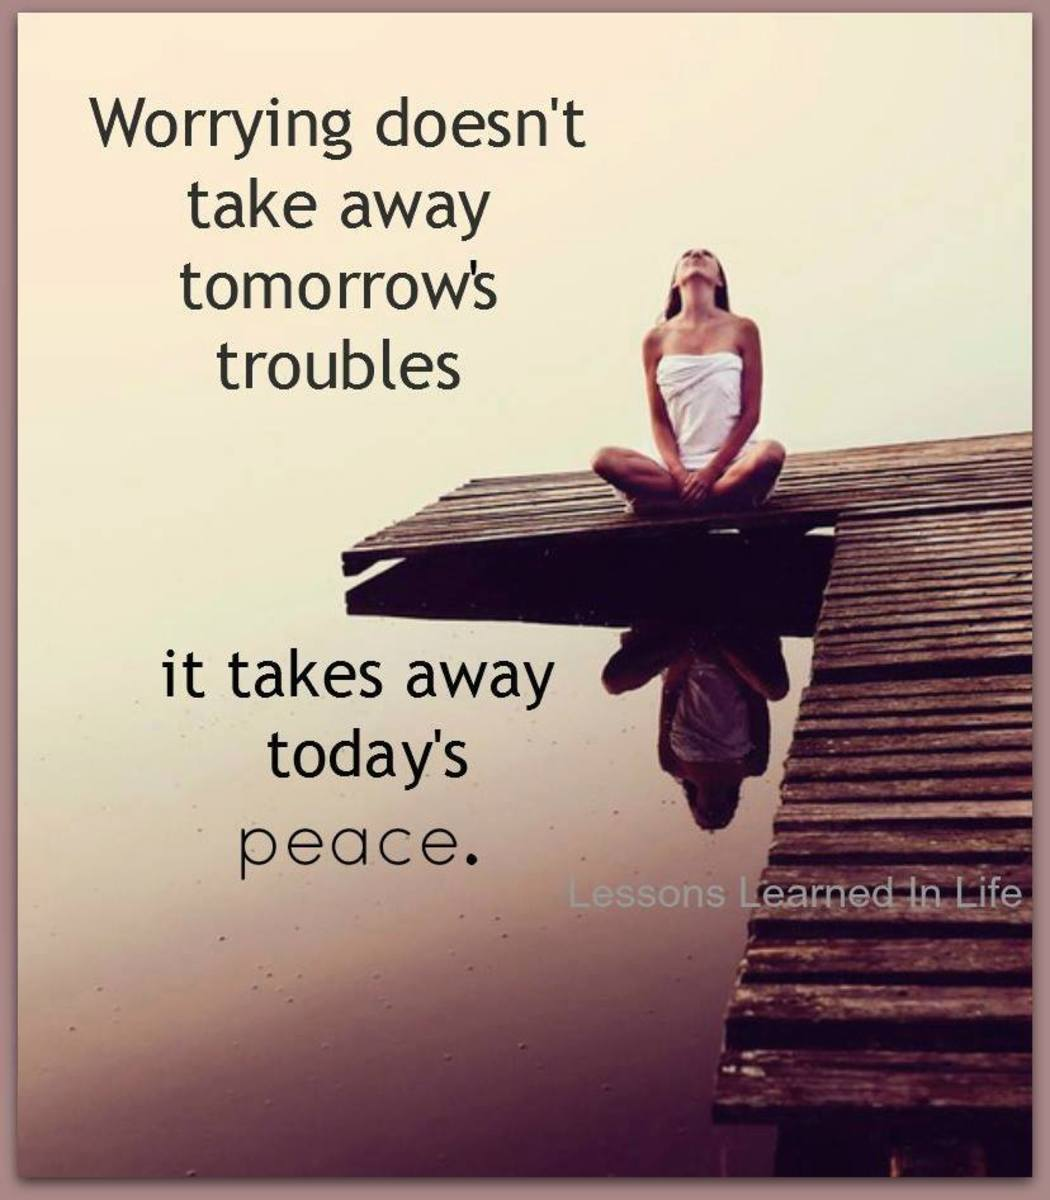 Get Rid of Stress and Worry